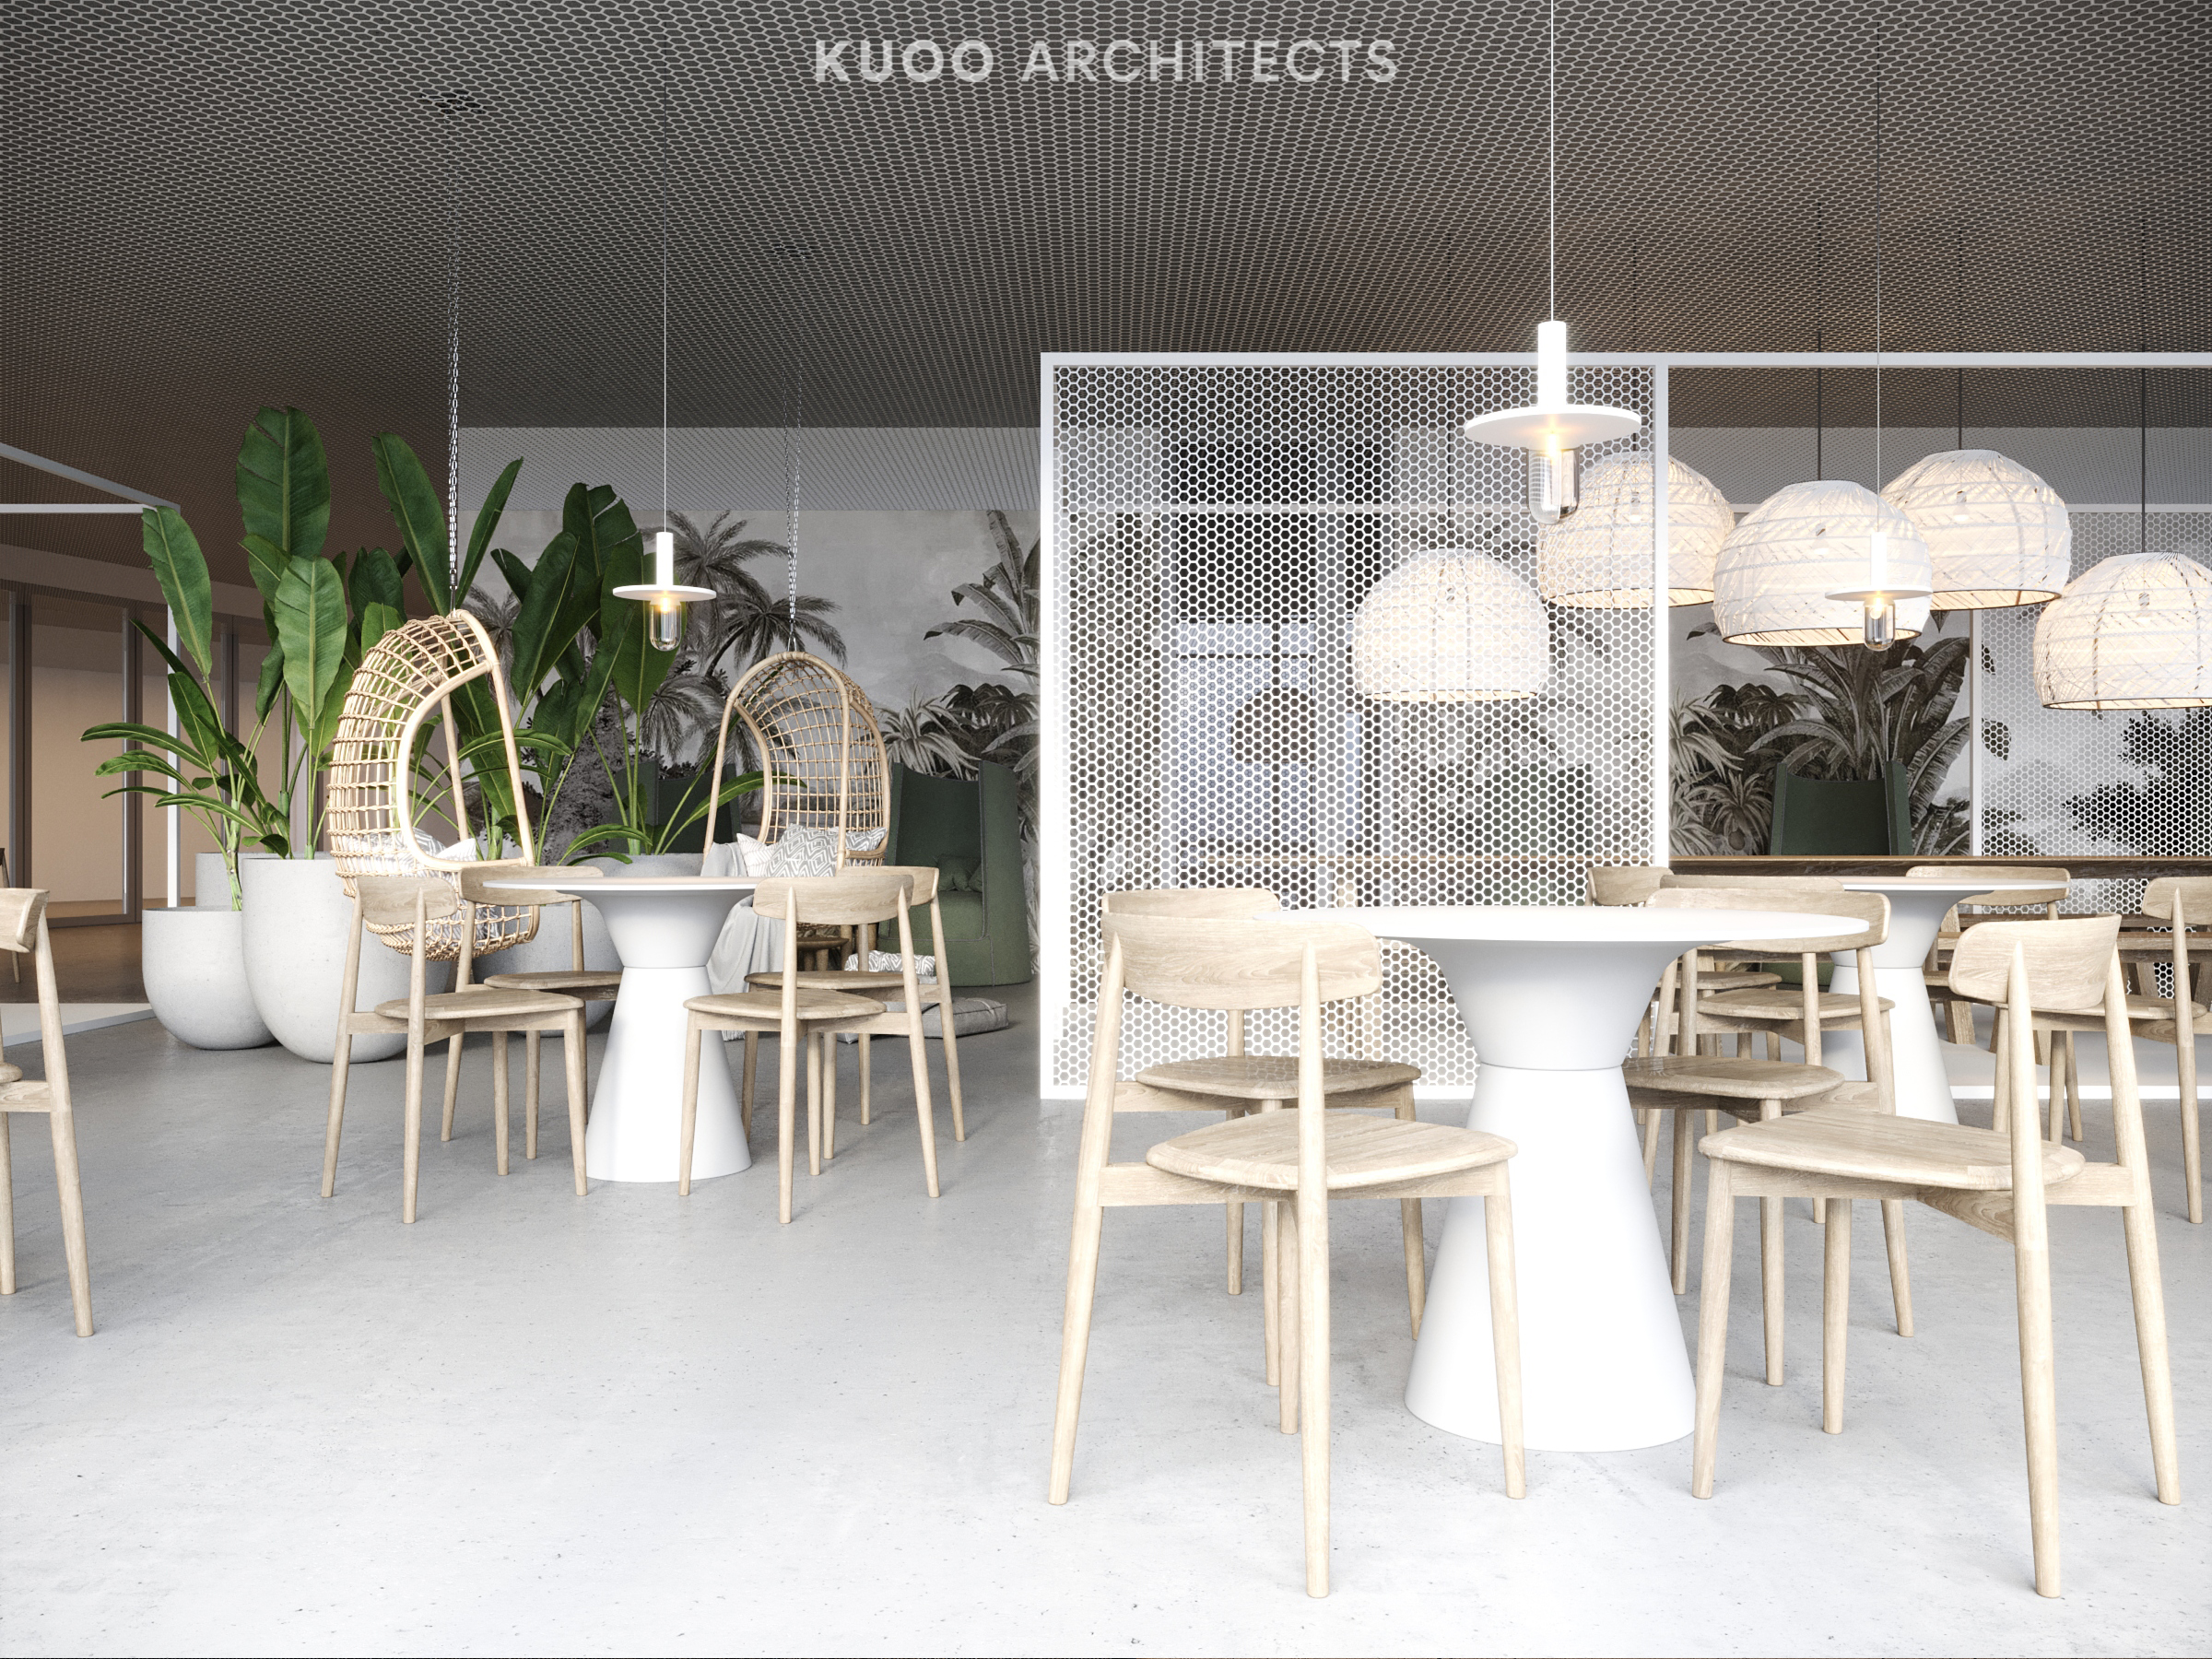 kuoo_architects_mcafe_5